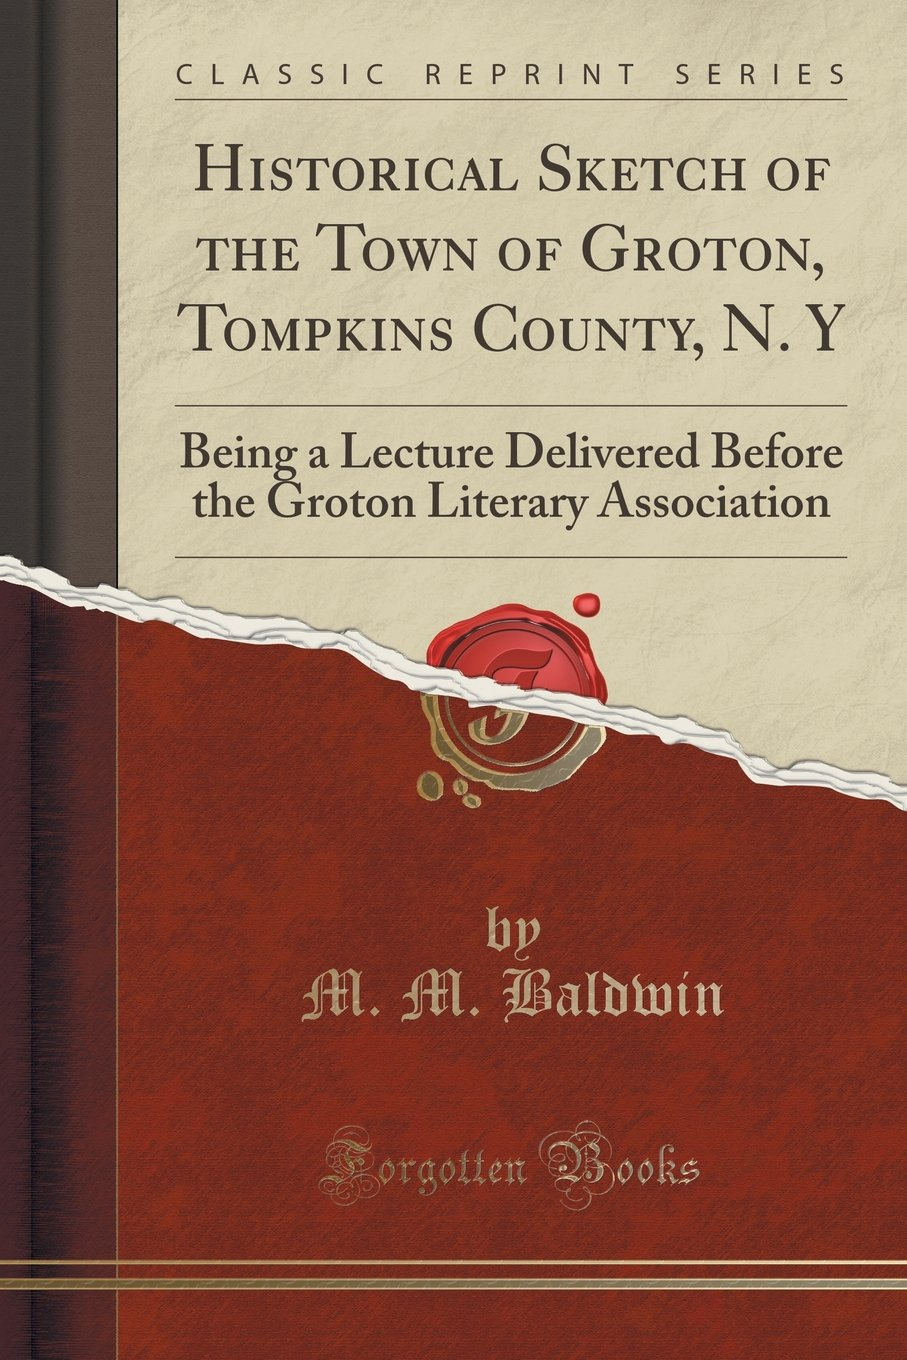 Read Online Historical Sketch of the Town of Groton, Tompkins County, N. Y: Being a Lecture Delivered Before the Groton Literary Association (Classic Reprint) PDF